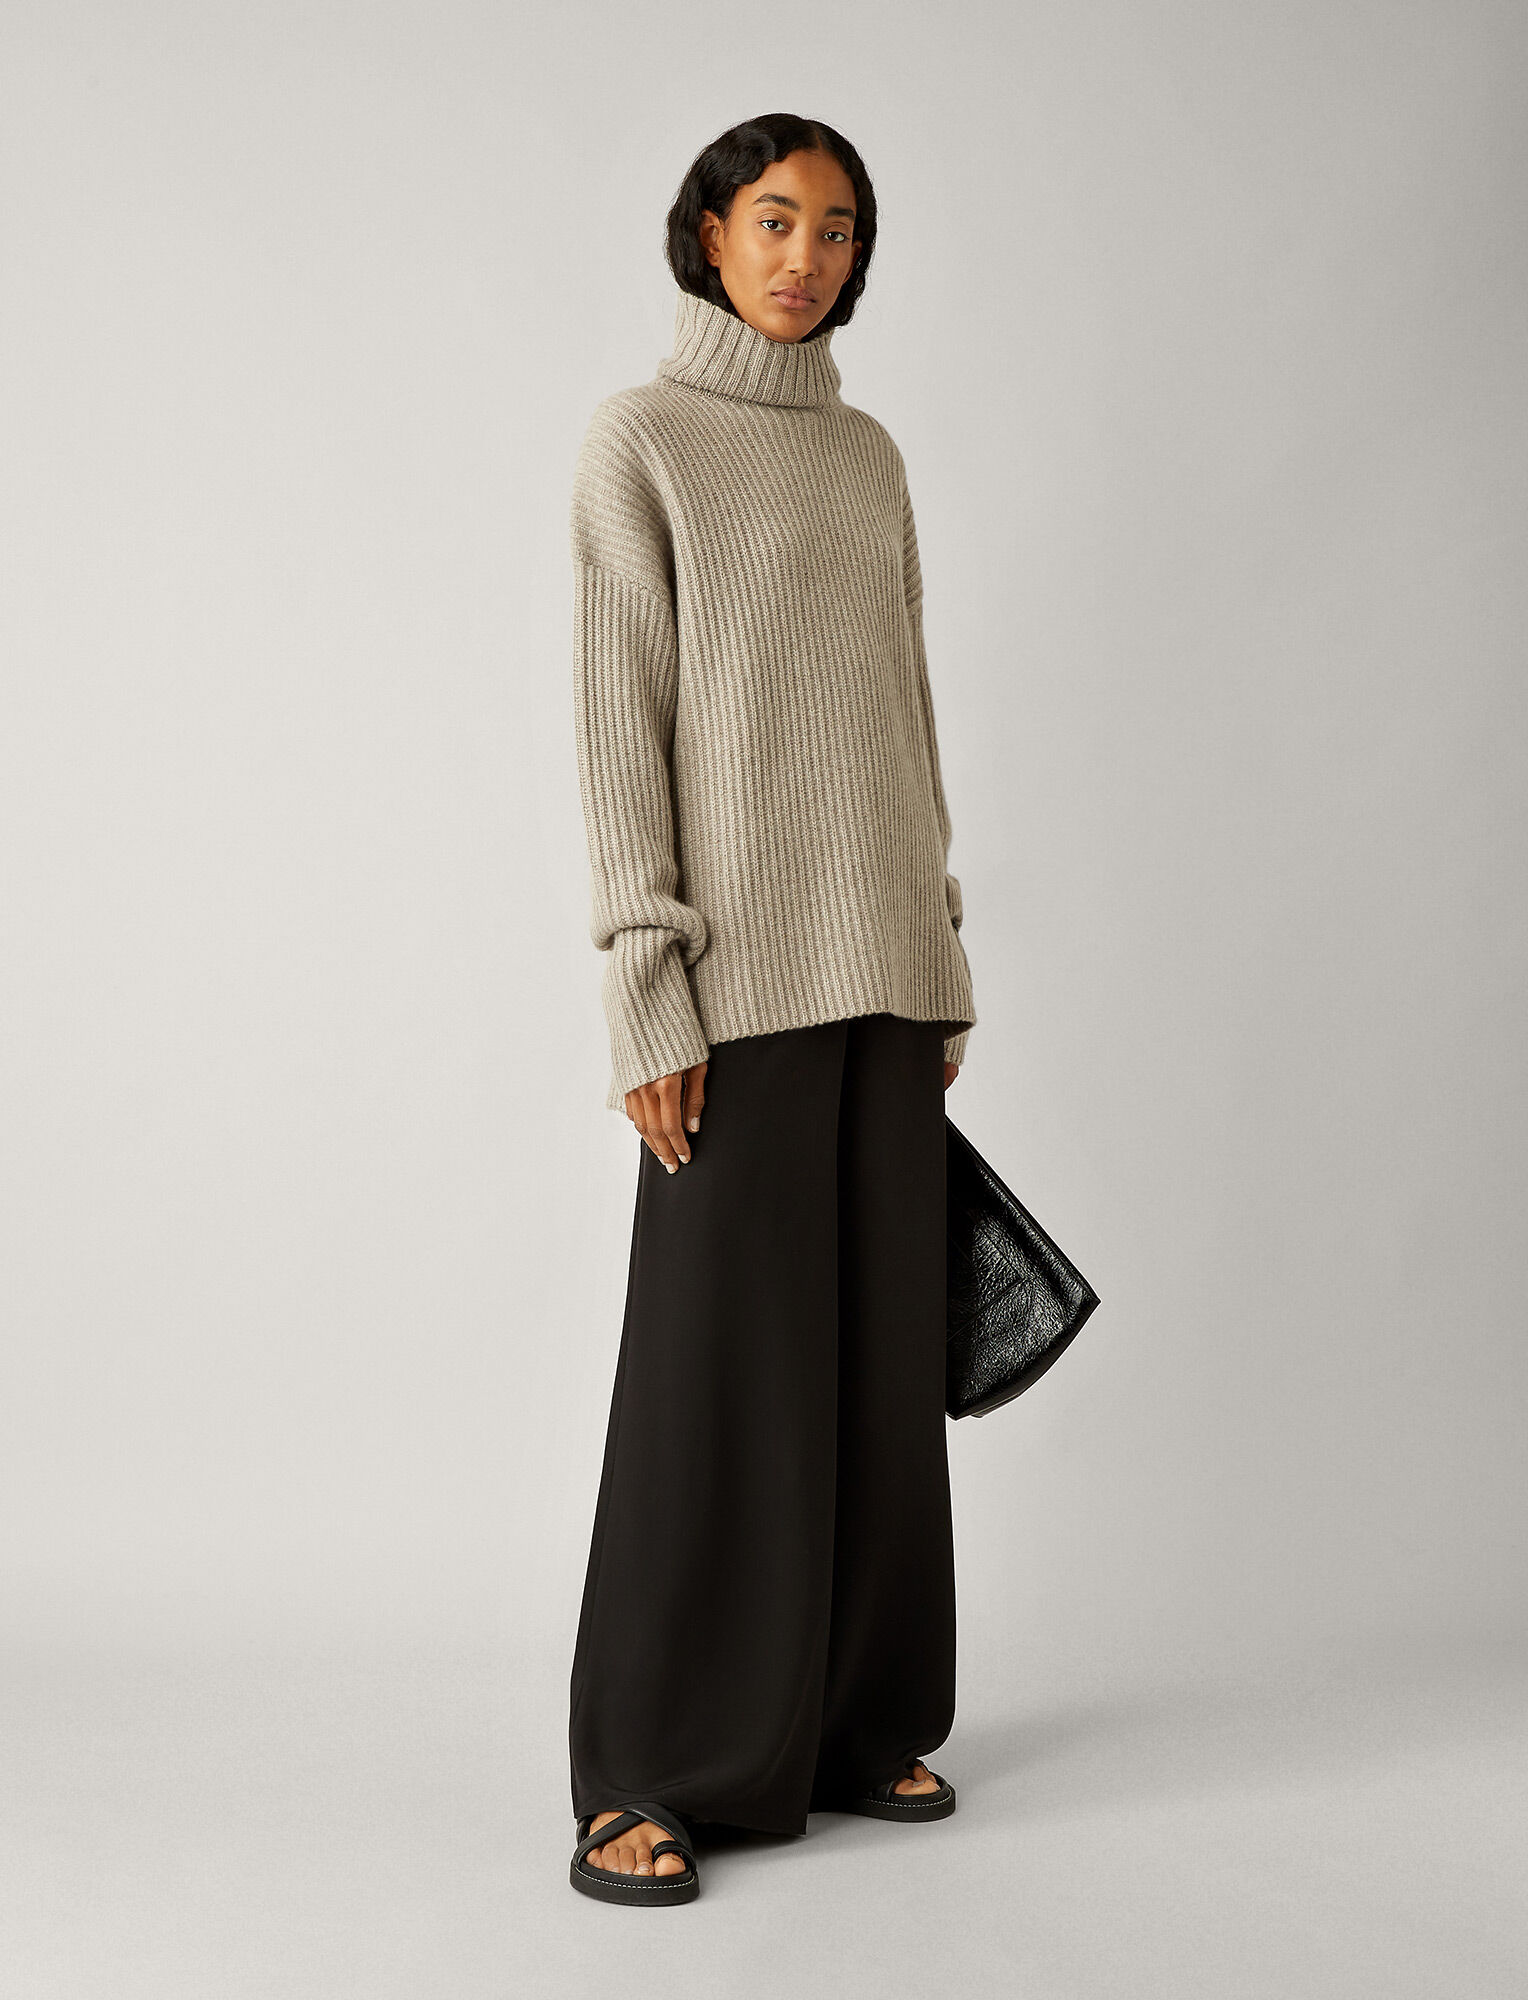 Joseph, High Neck Cashmere Luxe Knit, in QUARTZ